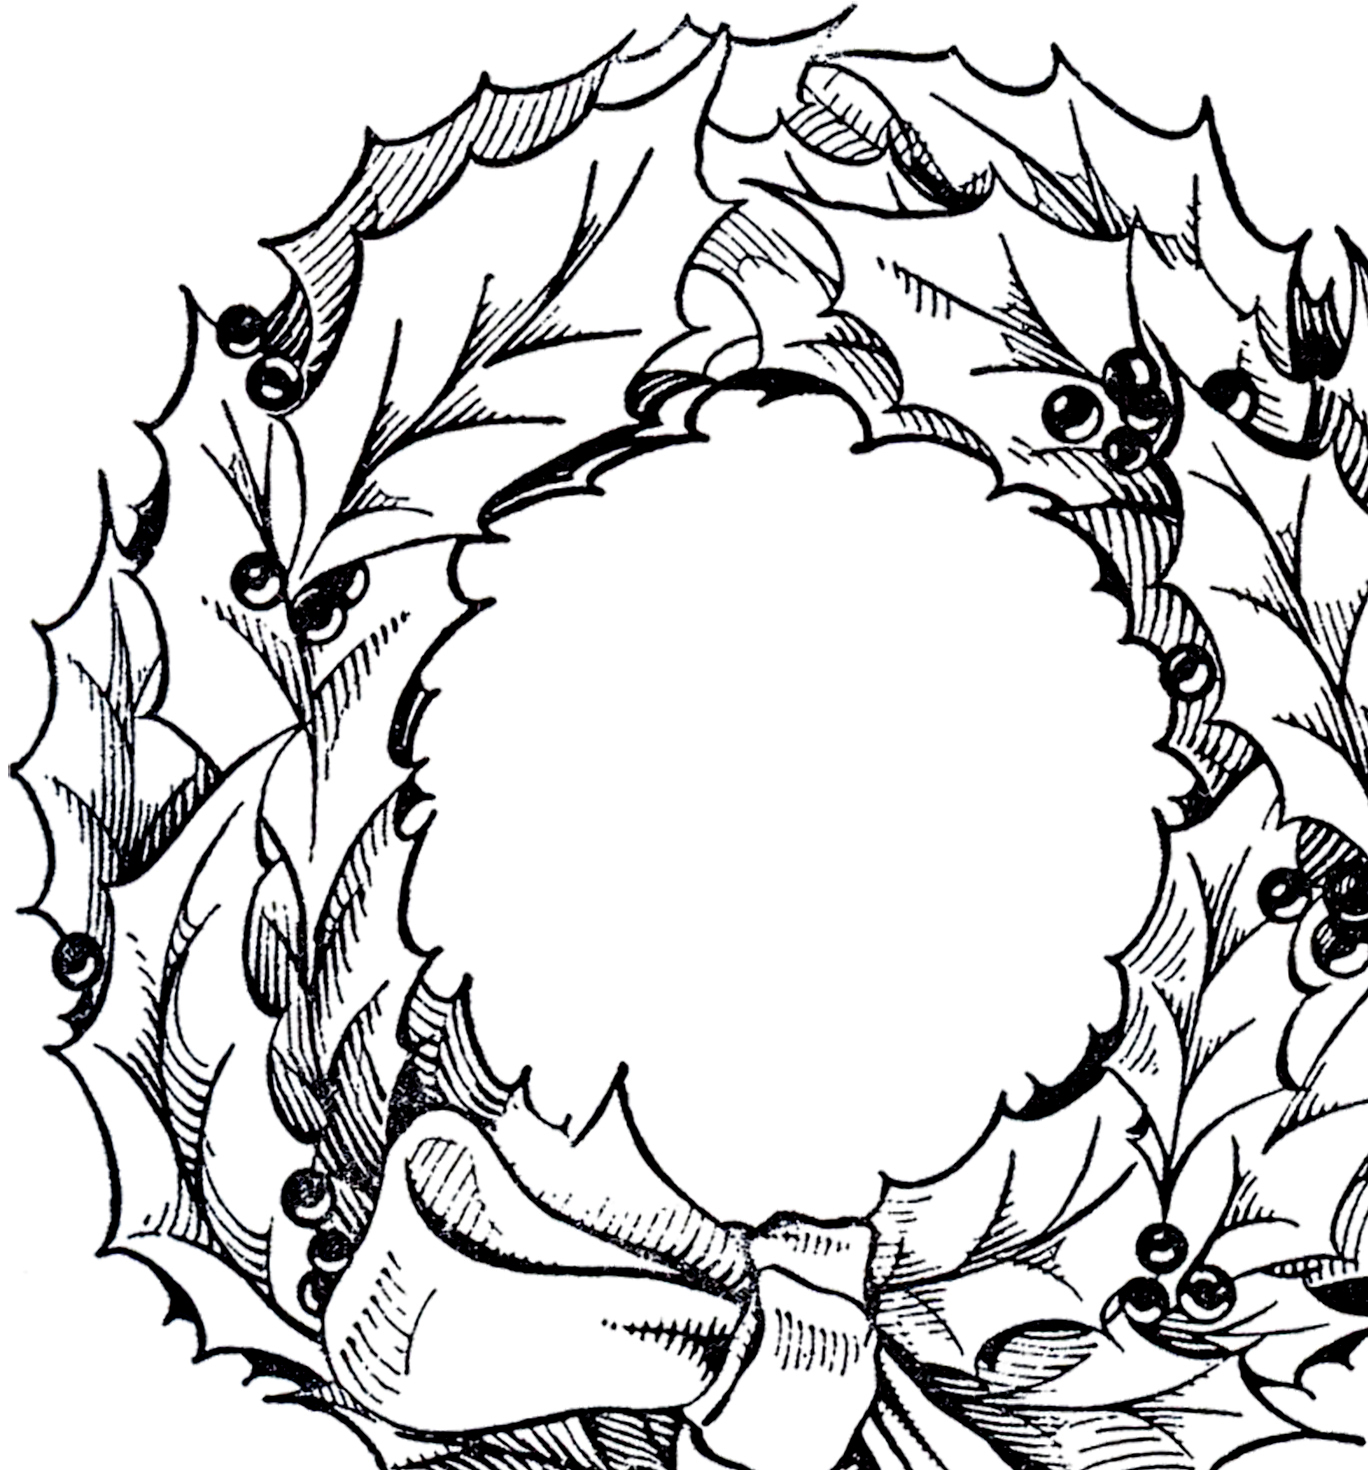 Vintage Christmas Wreath Graphic.